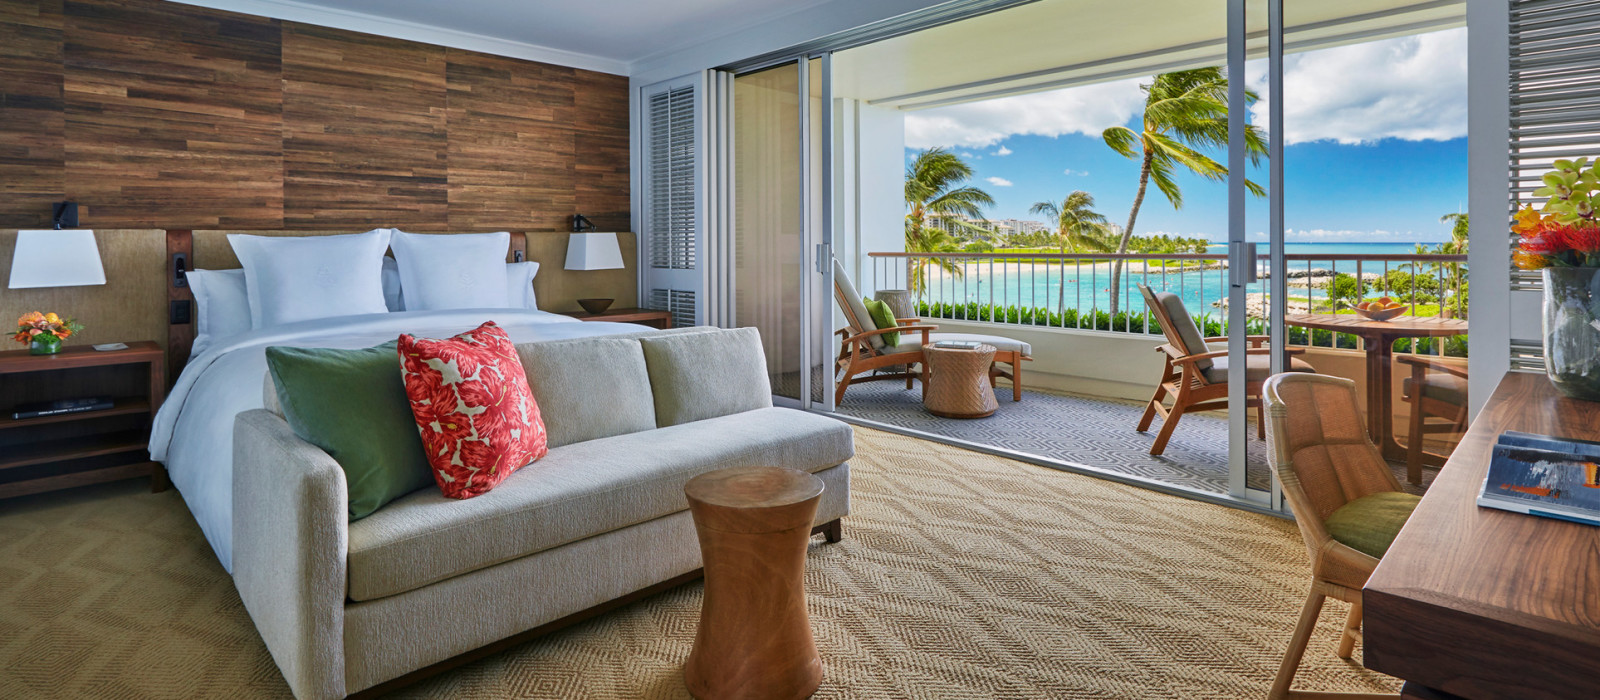 Hotel Four Seasons Resort Oahu at Ko Olina Hawaii